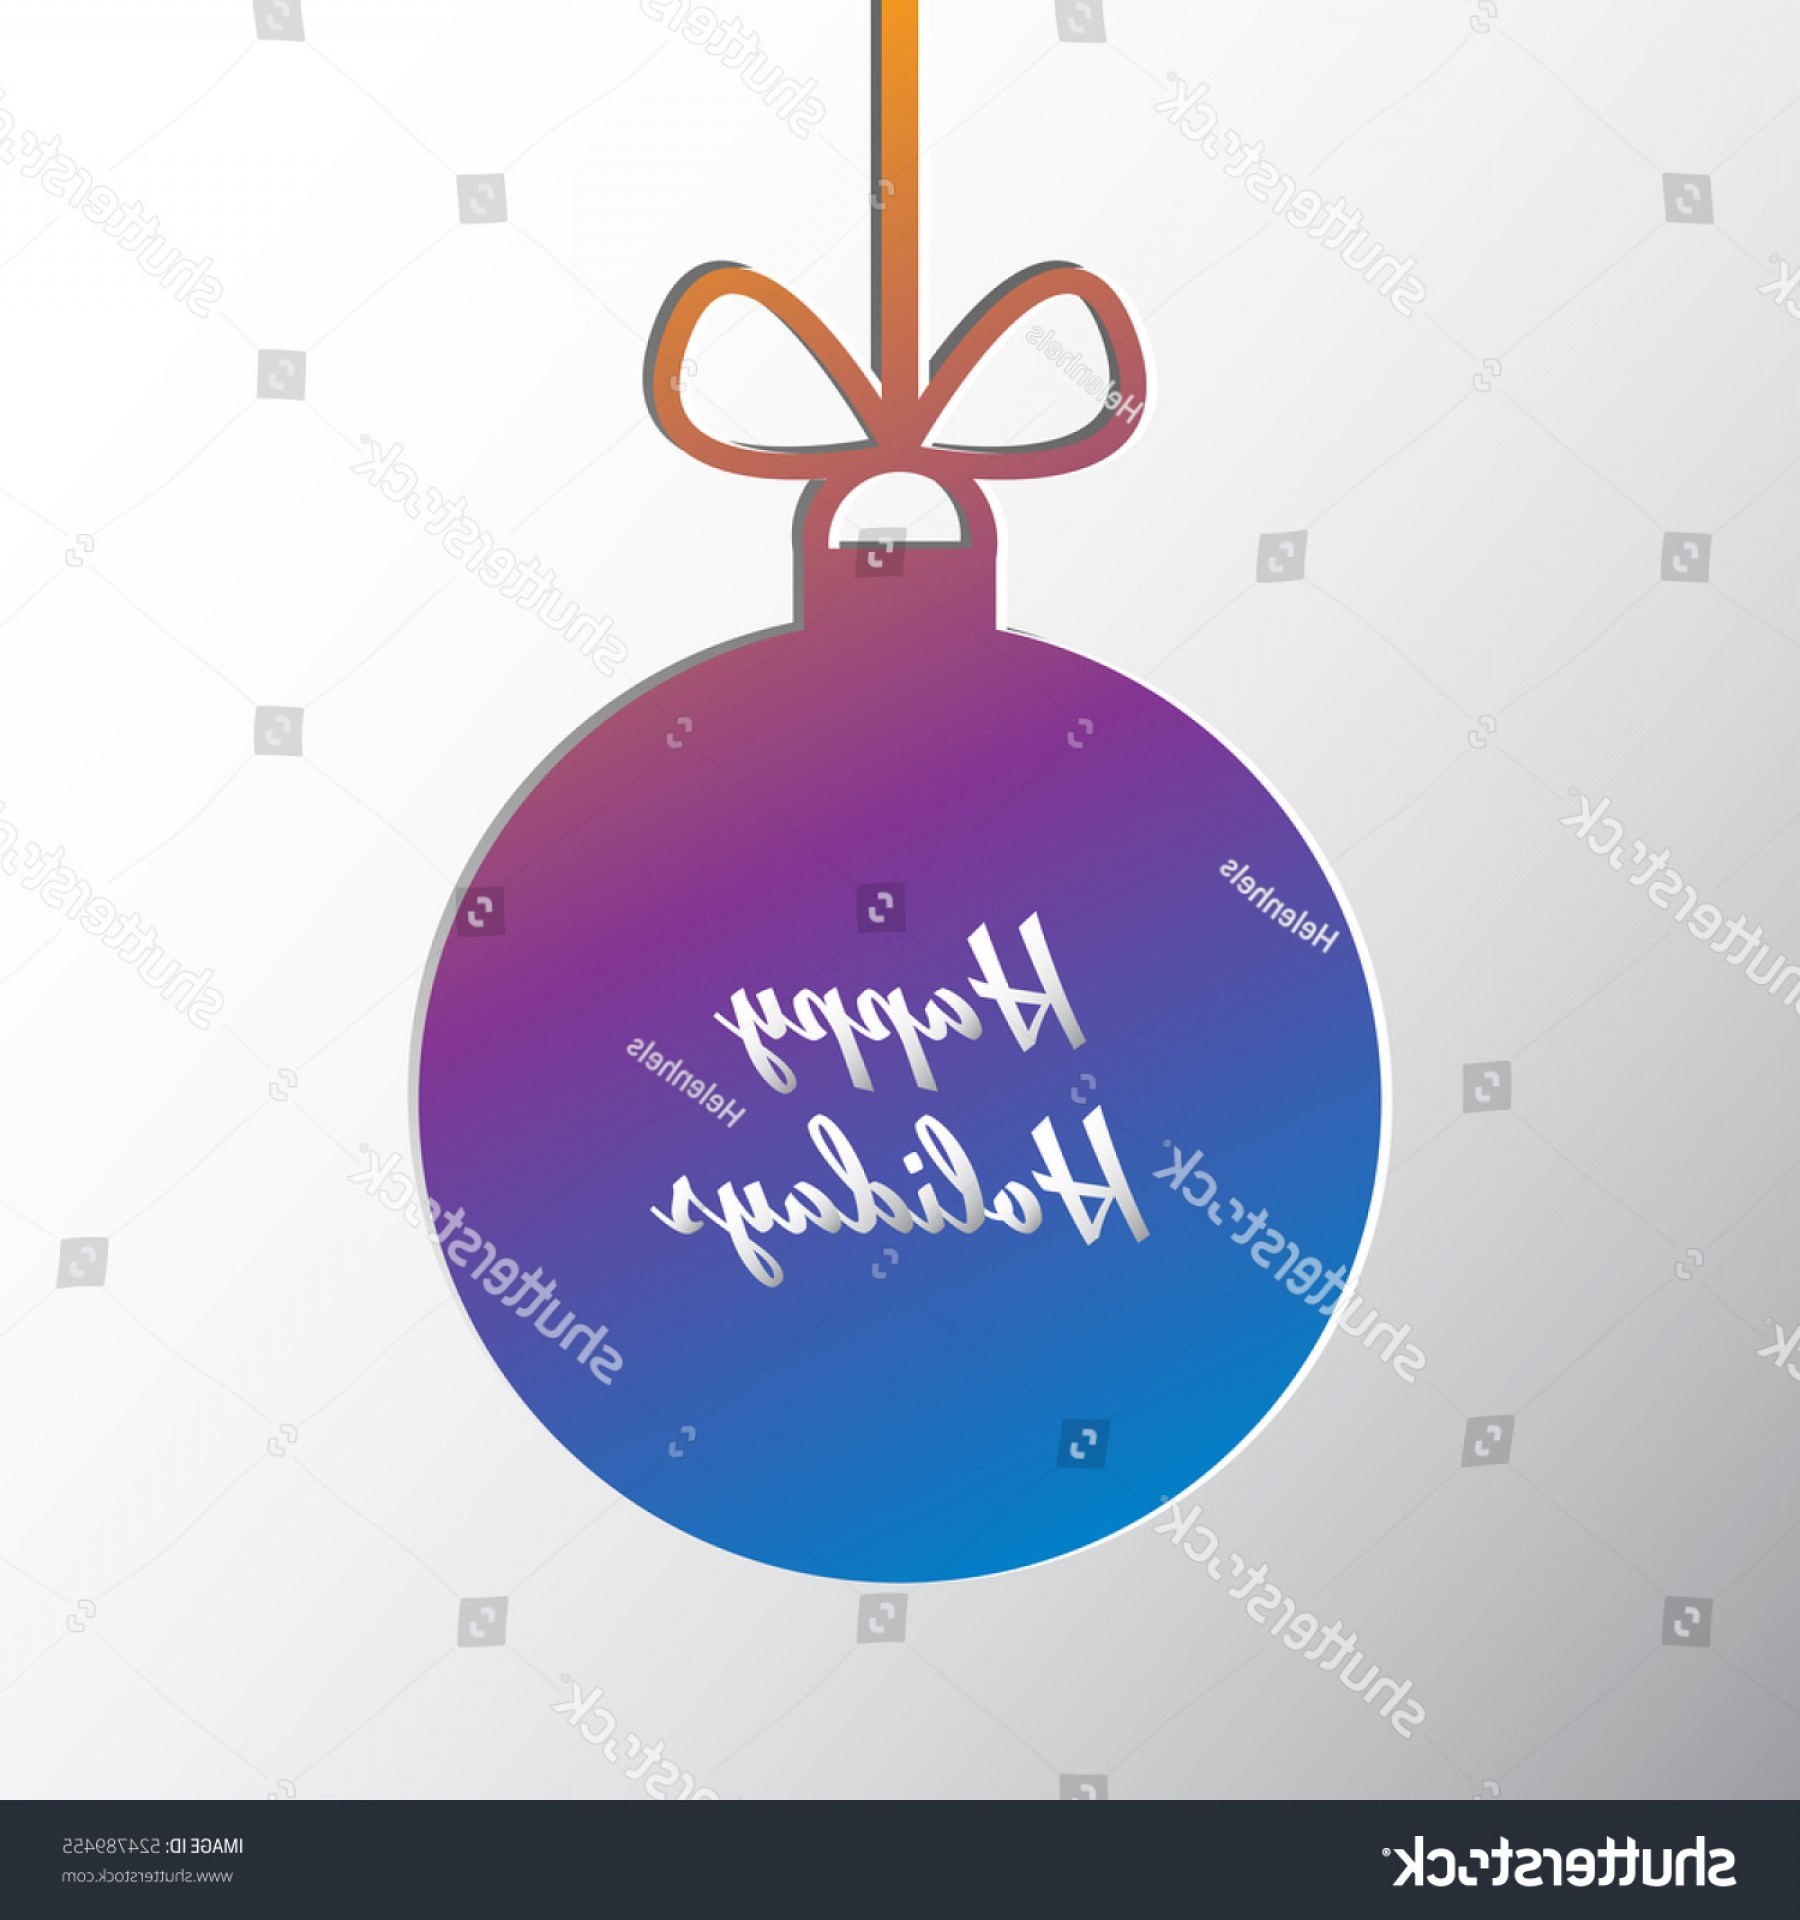 Vector Silhouette Happy Holidays: Silhouette Christmas Ball Happy Holidays Words